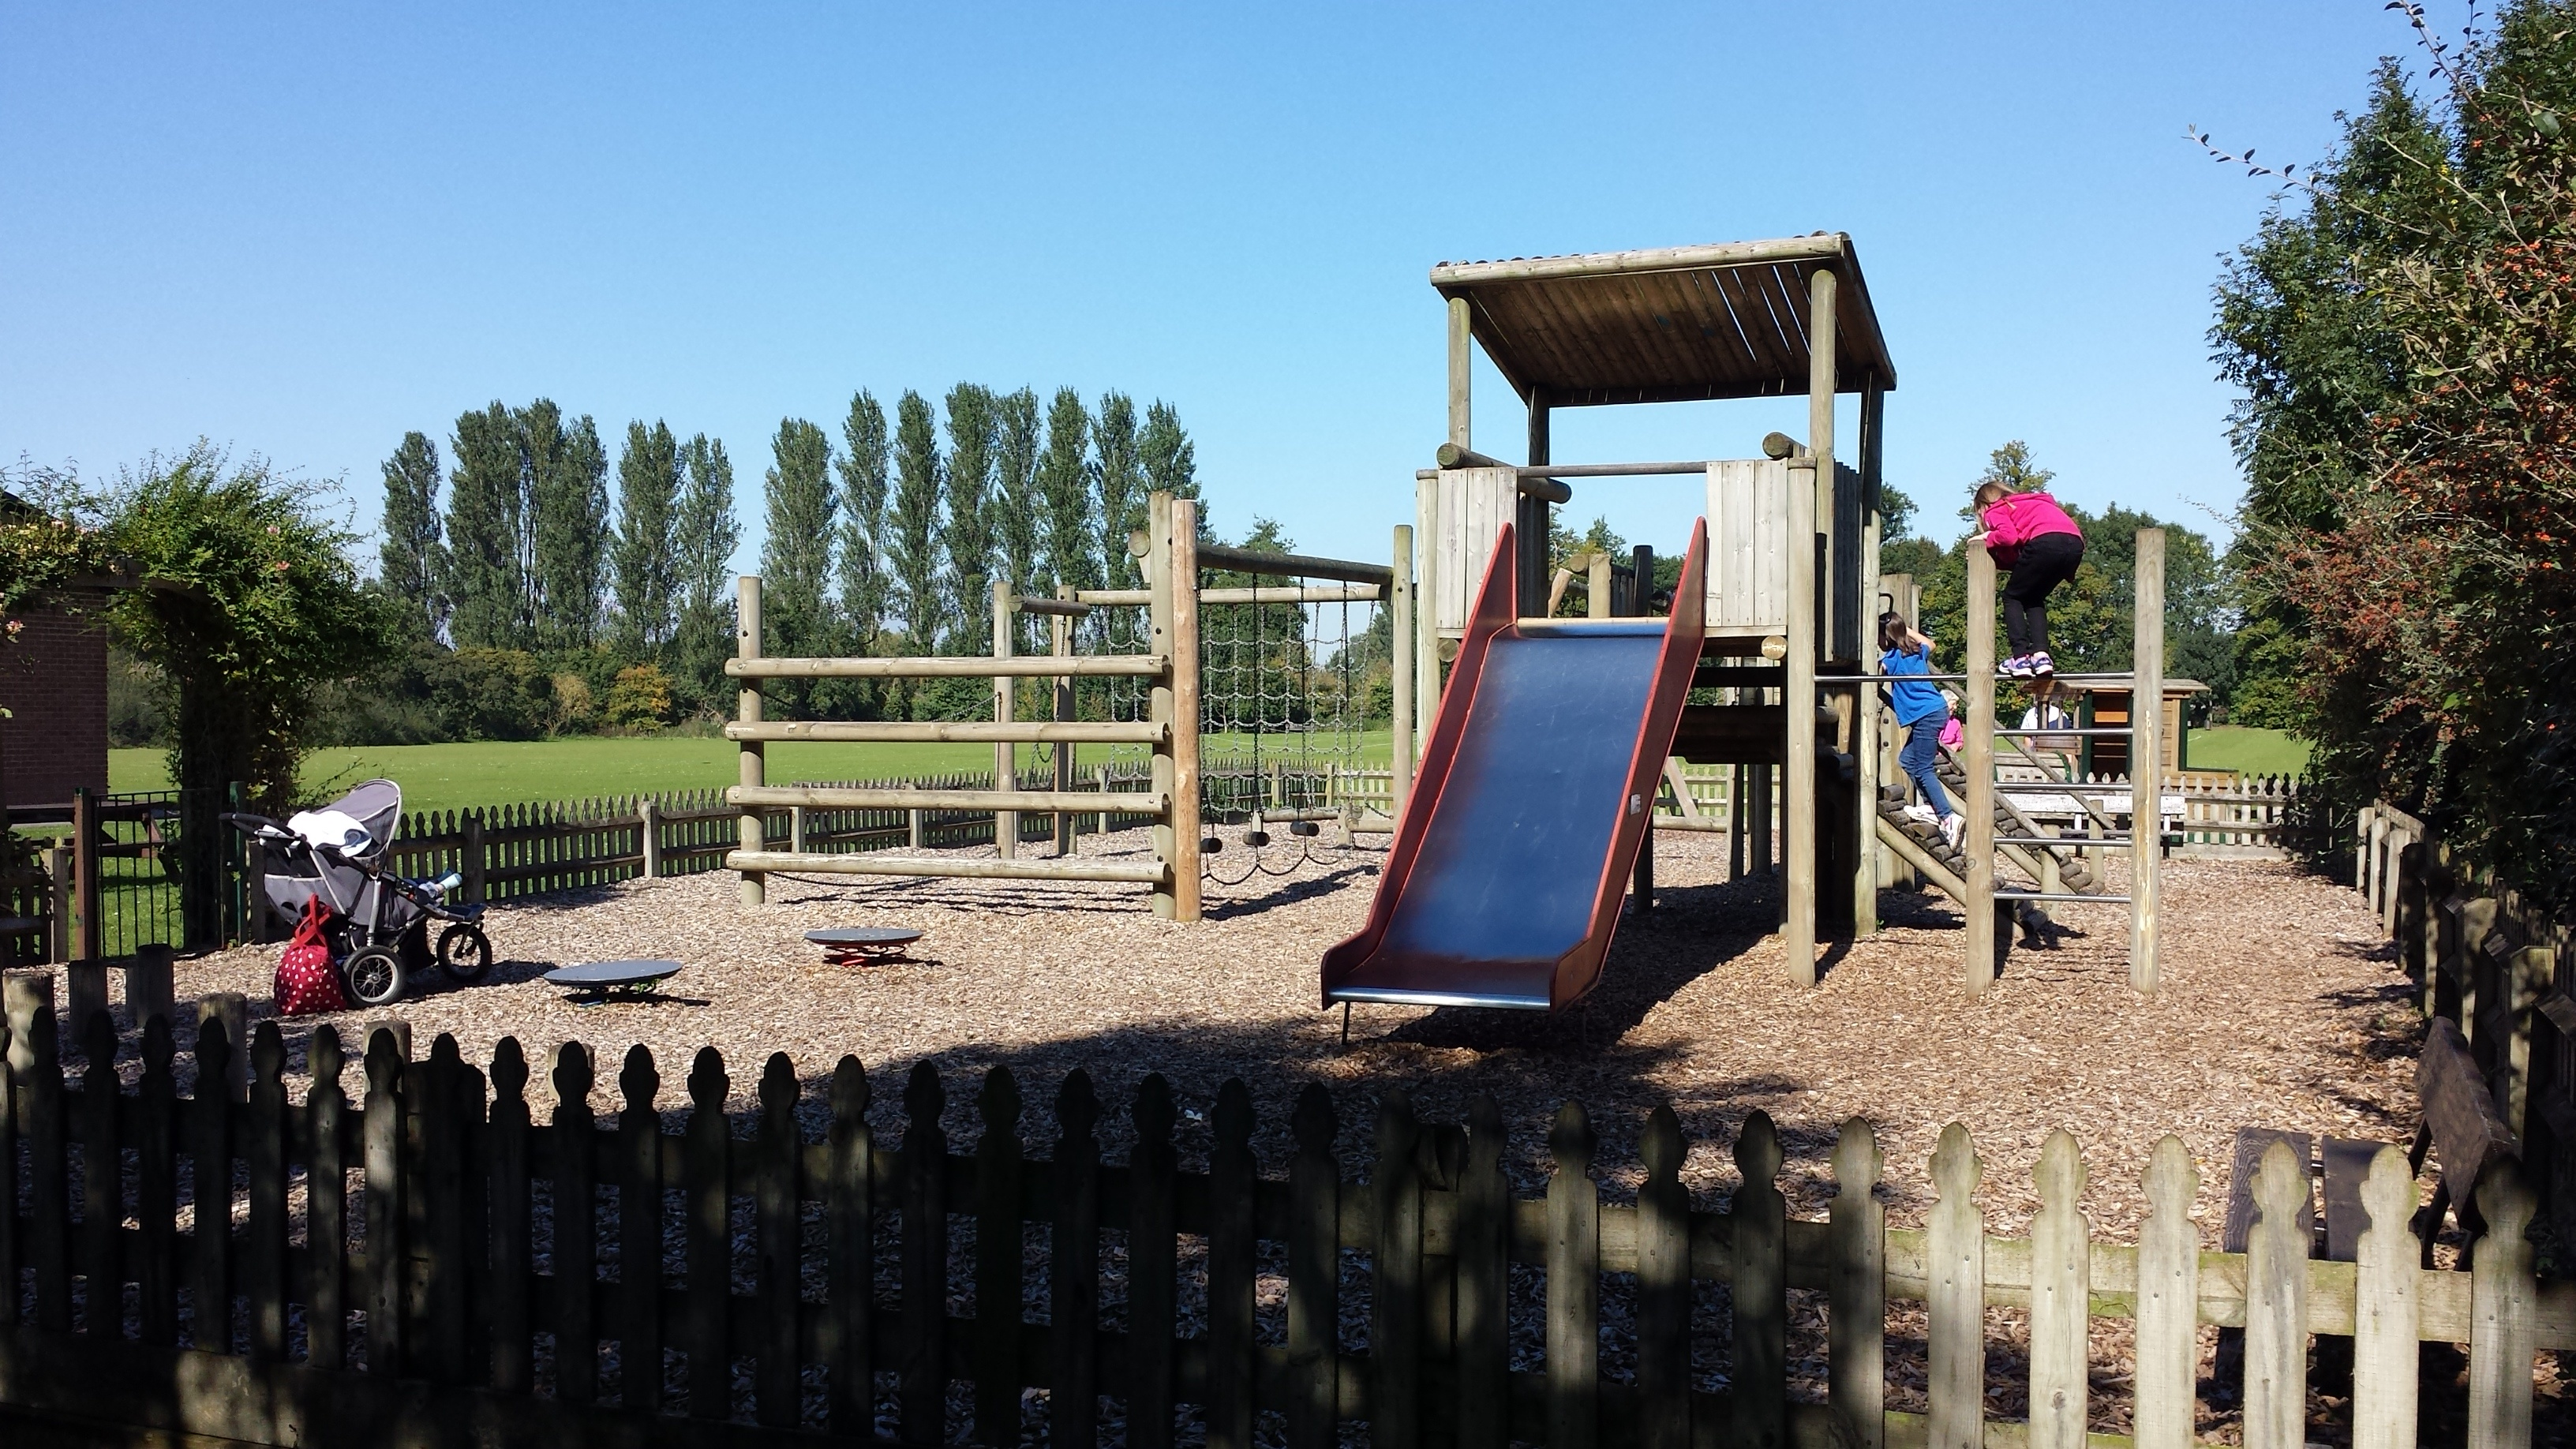 *OLD* Crowmarsh Gifford Recreation Ground Play Area